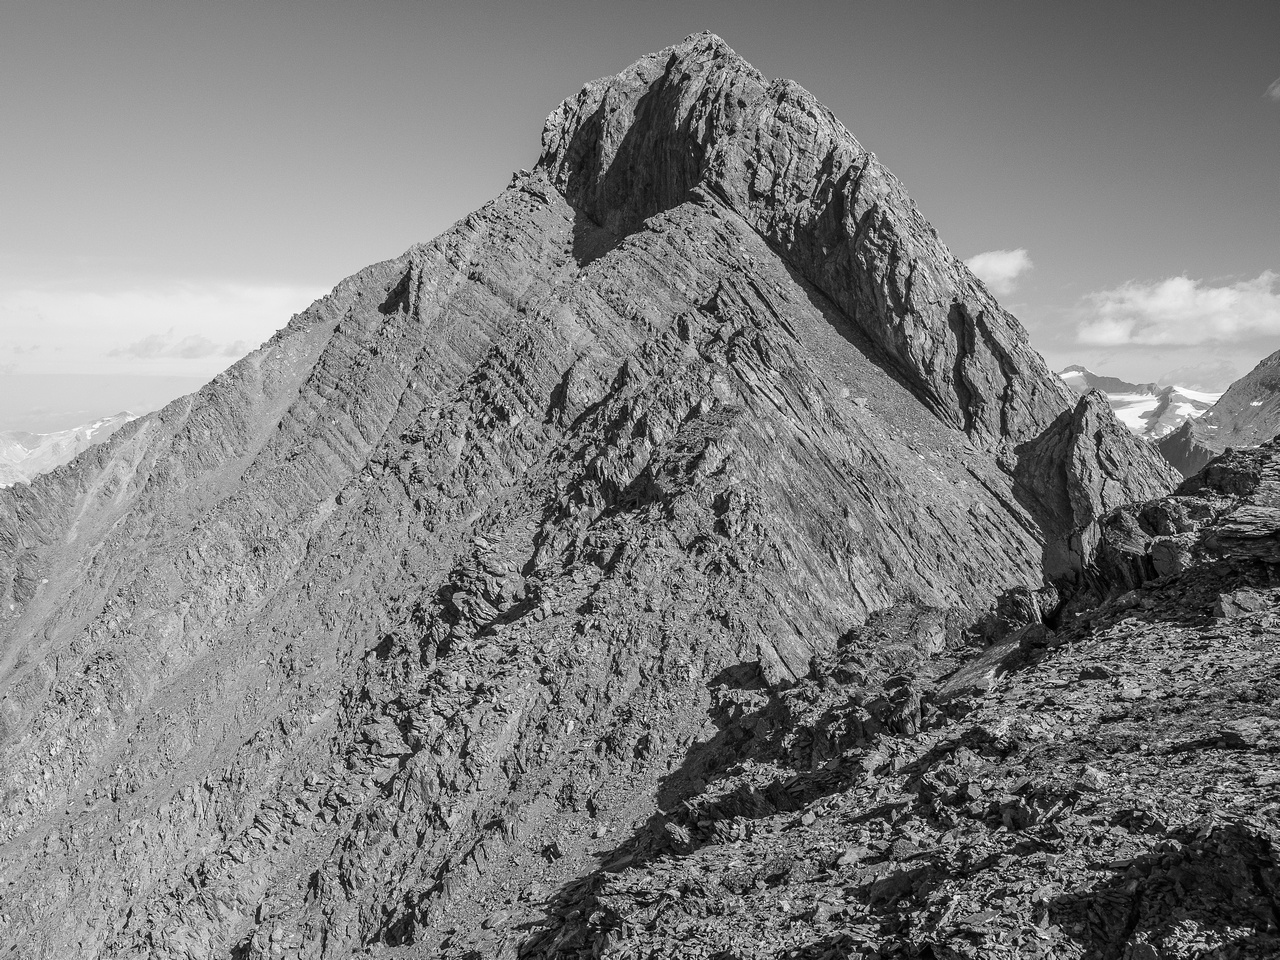 There are some minor undulations on the ridge as you approach the scree traverse to the north end of the summit block.